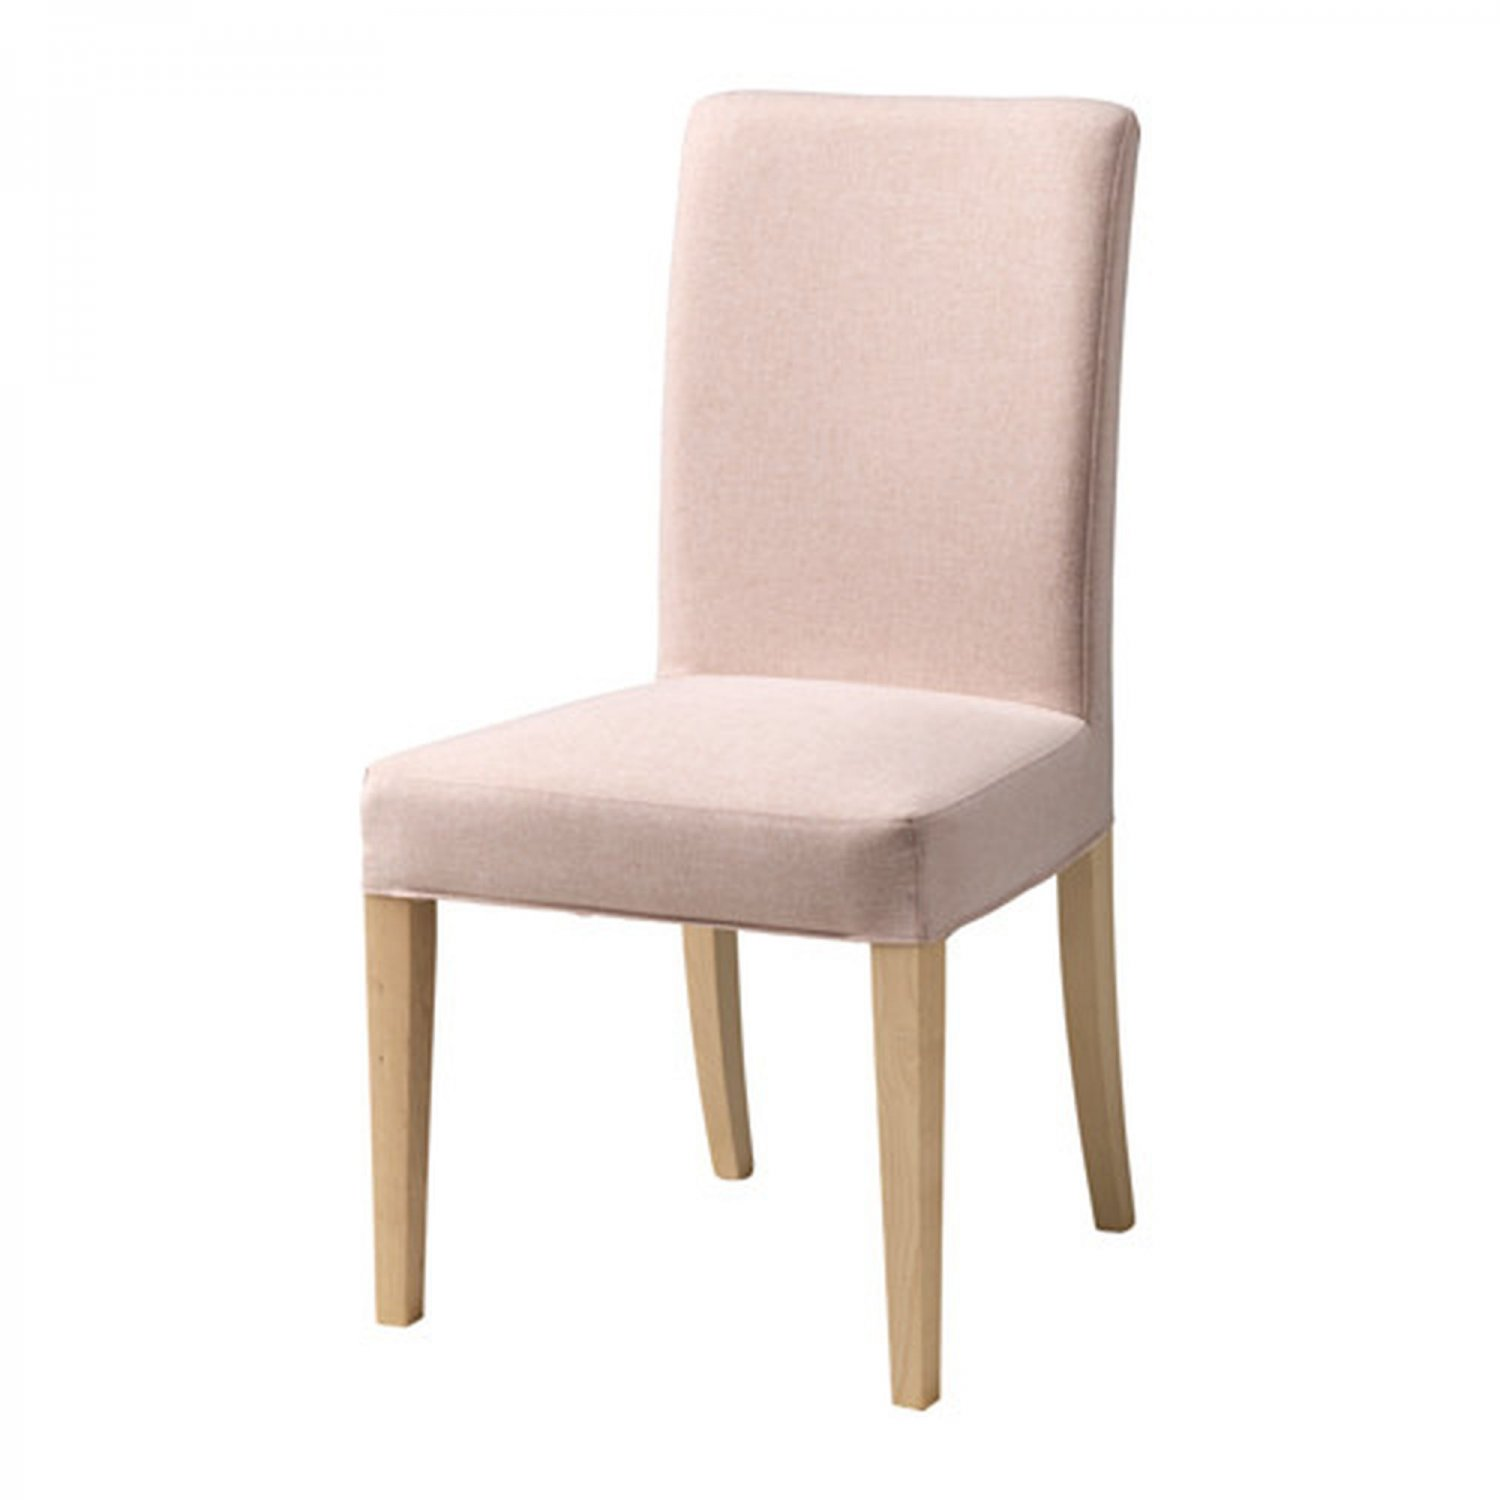 Ikea Henriksdal Chair Slipcover Cover 21 Quot 54cm Gunnared Light Pink Pale